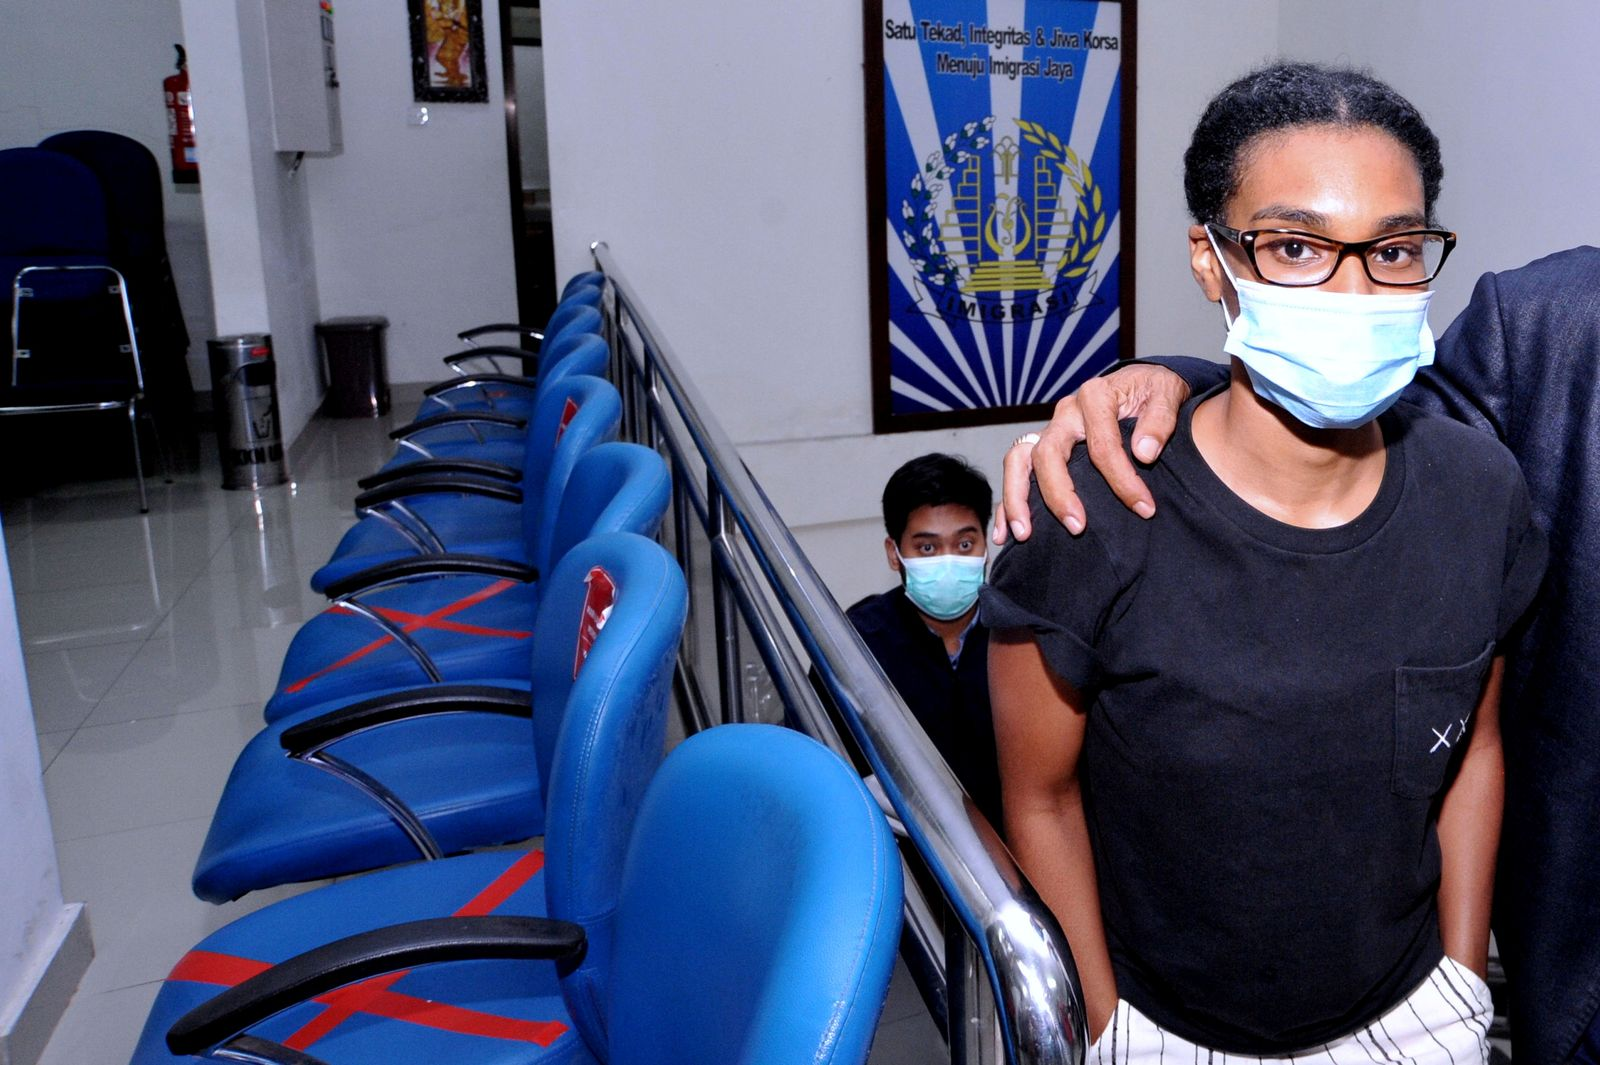 An American woman and self-described digital nomad Kristen Gray looks on after being examined at Indonesian Immigration office in Denpasar